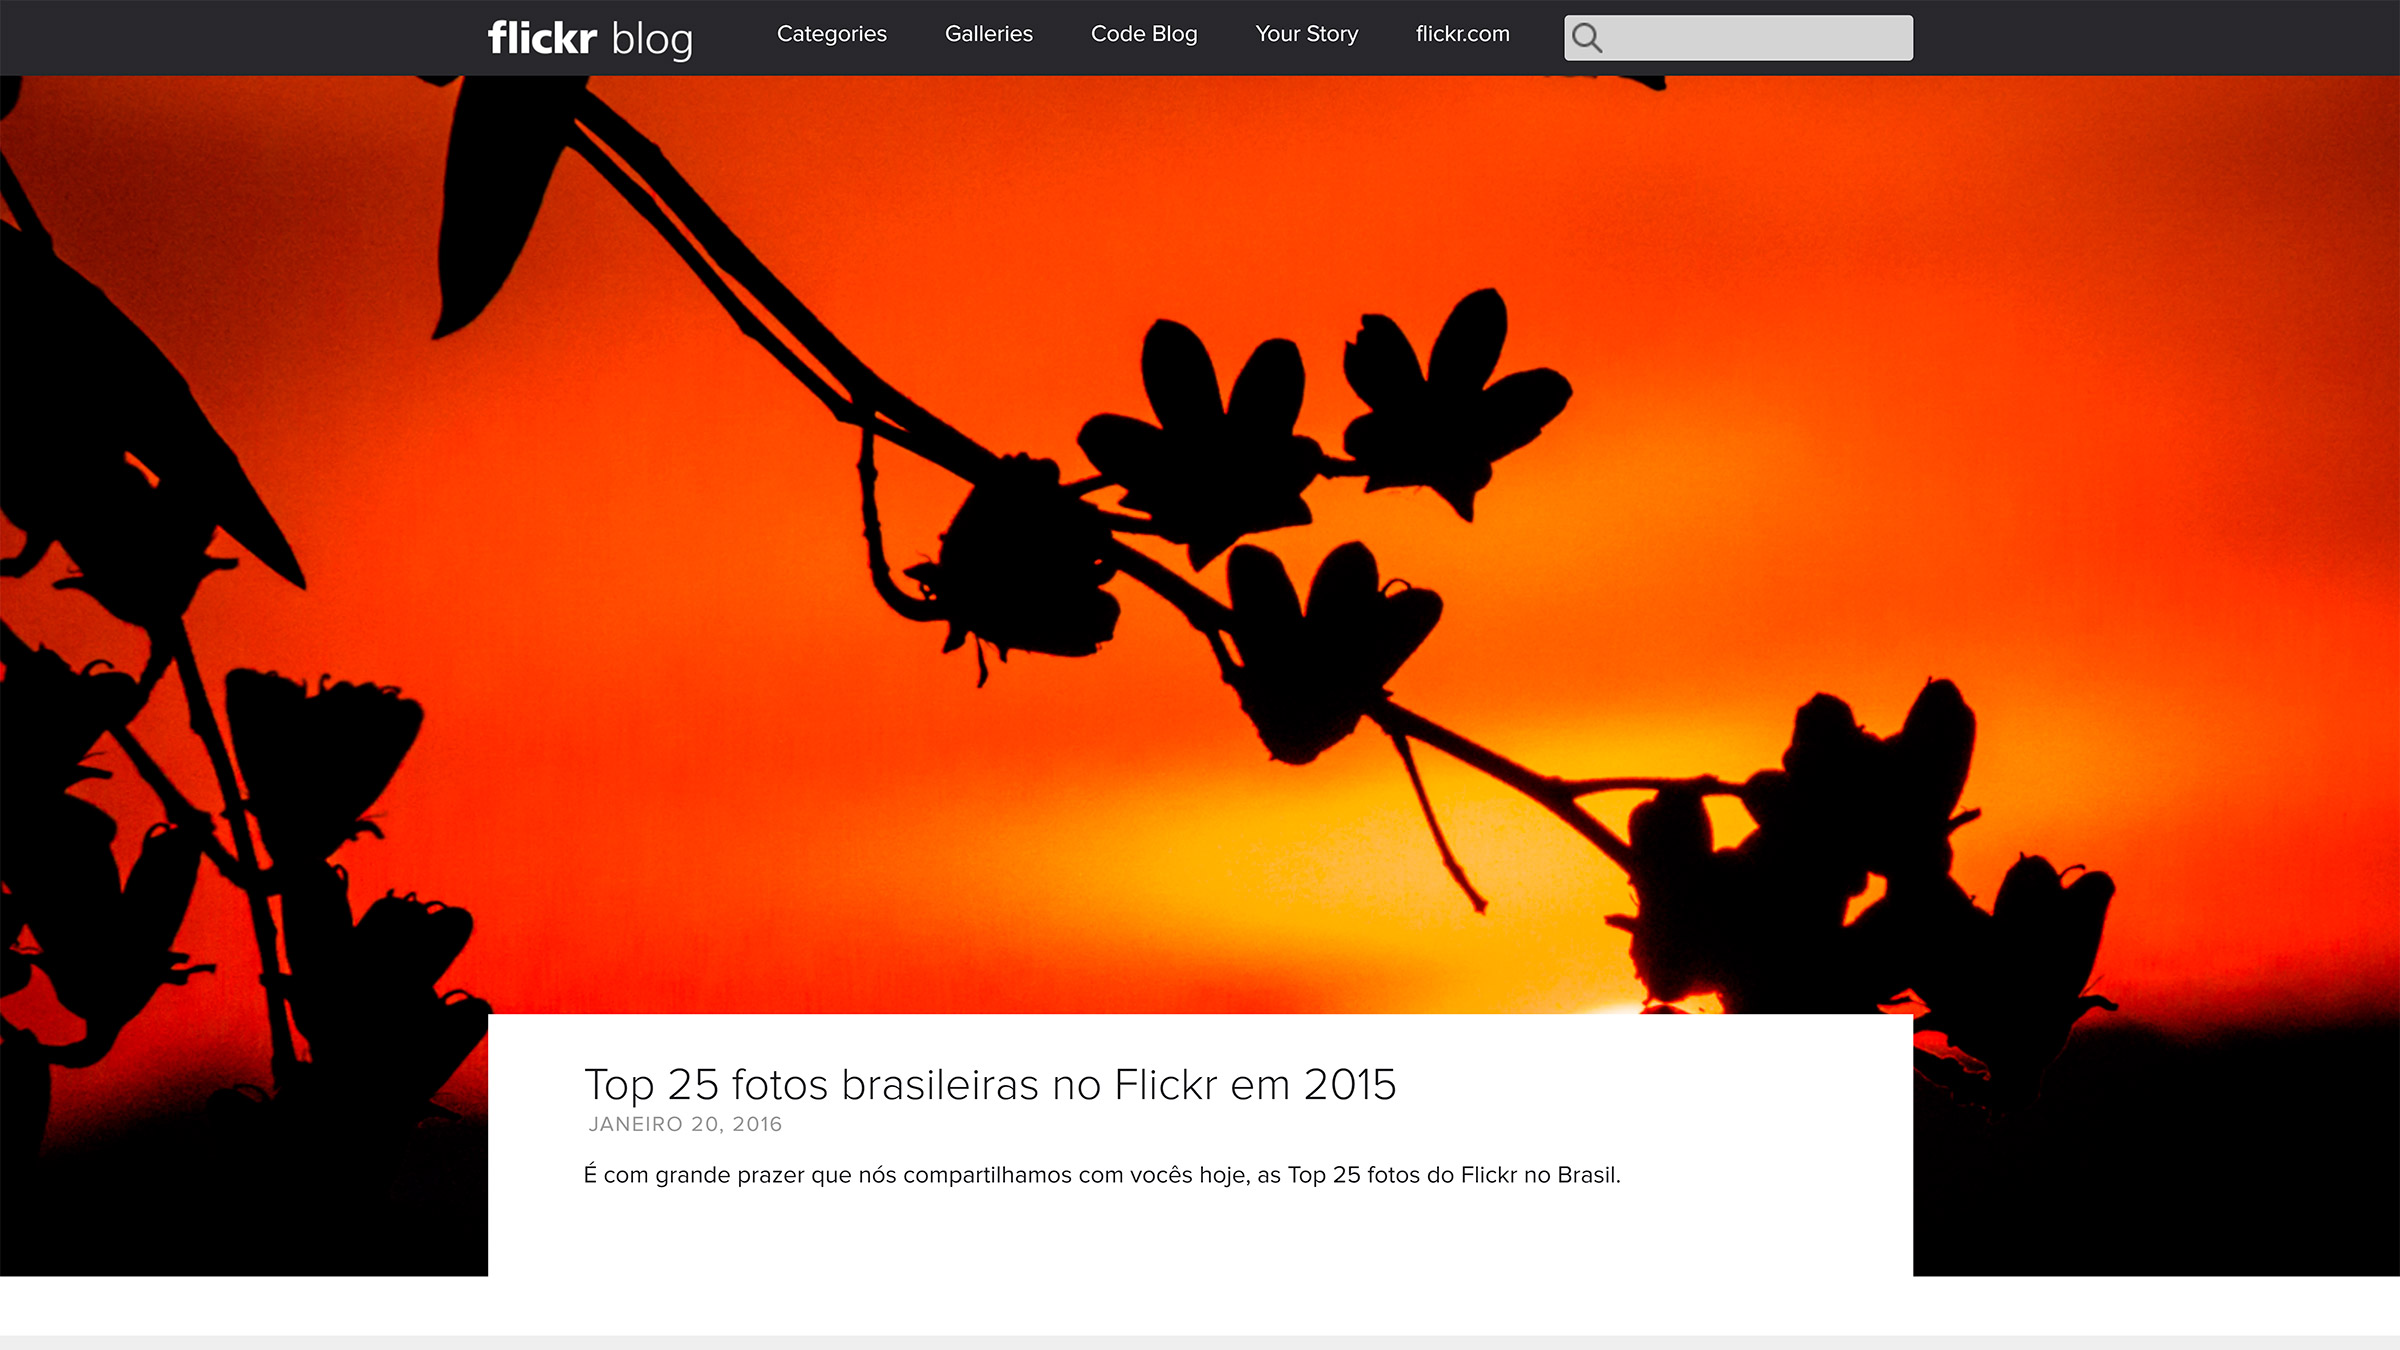 flickr blog site construido com o wordpress